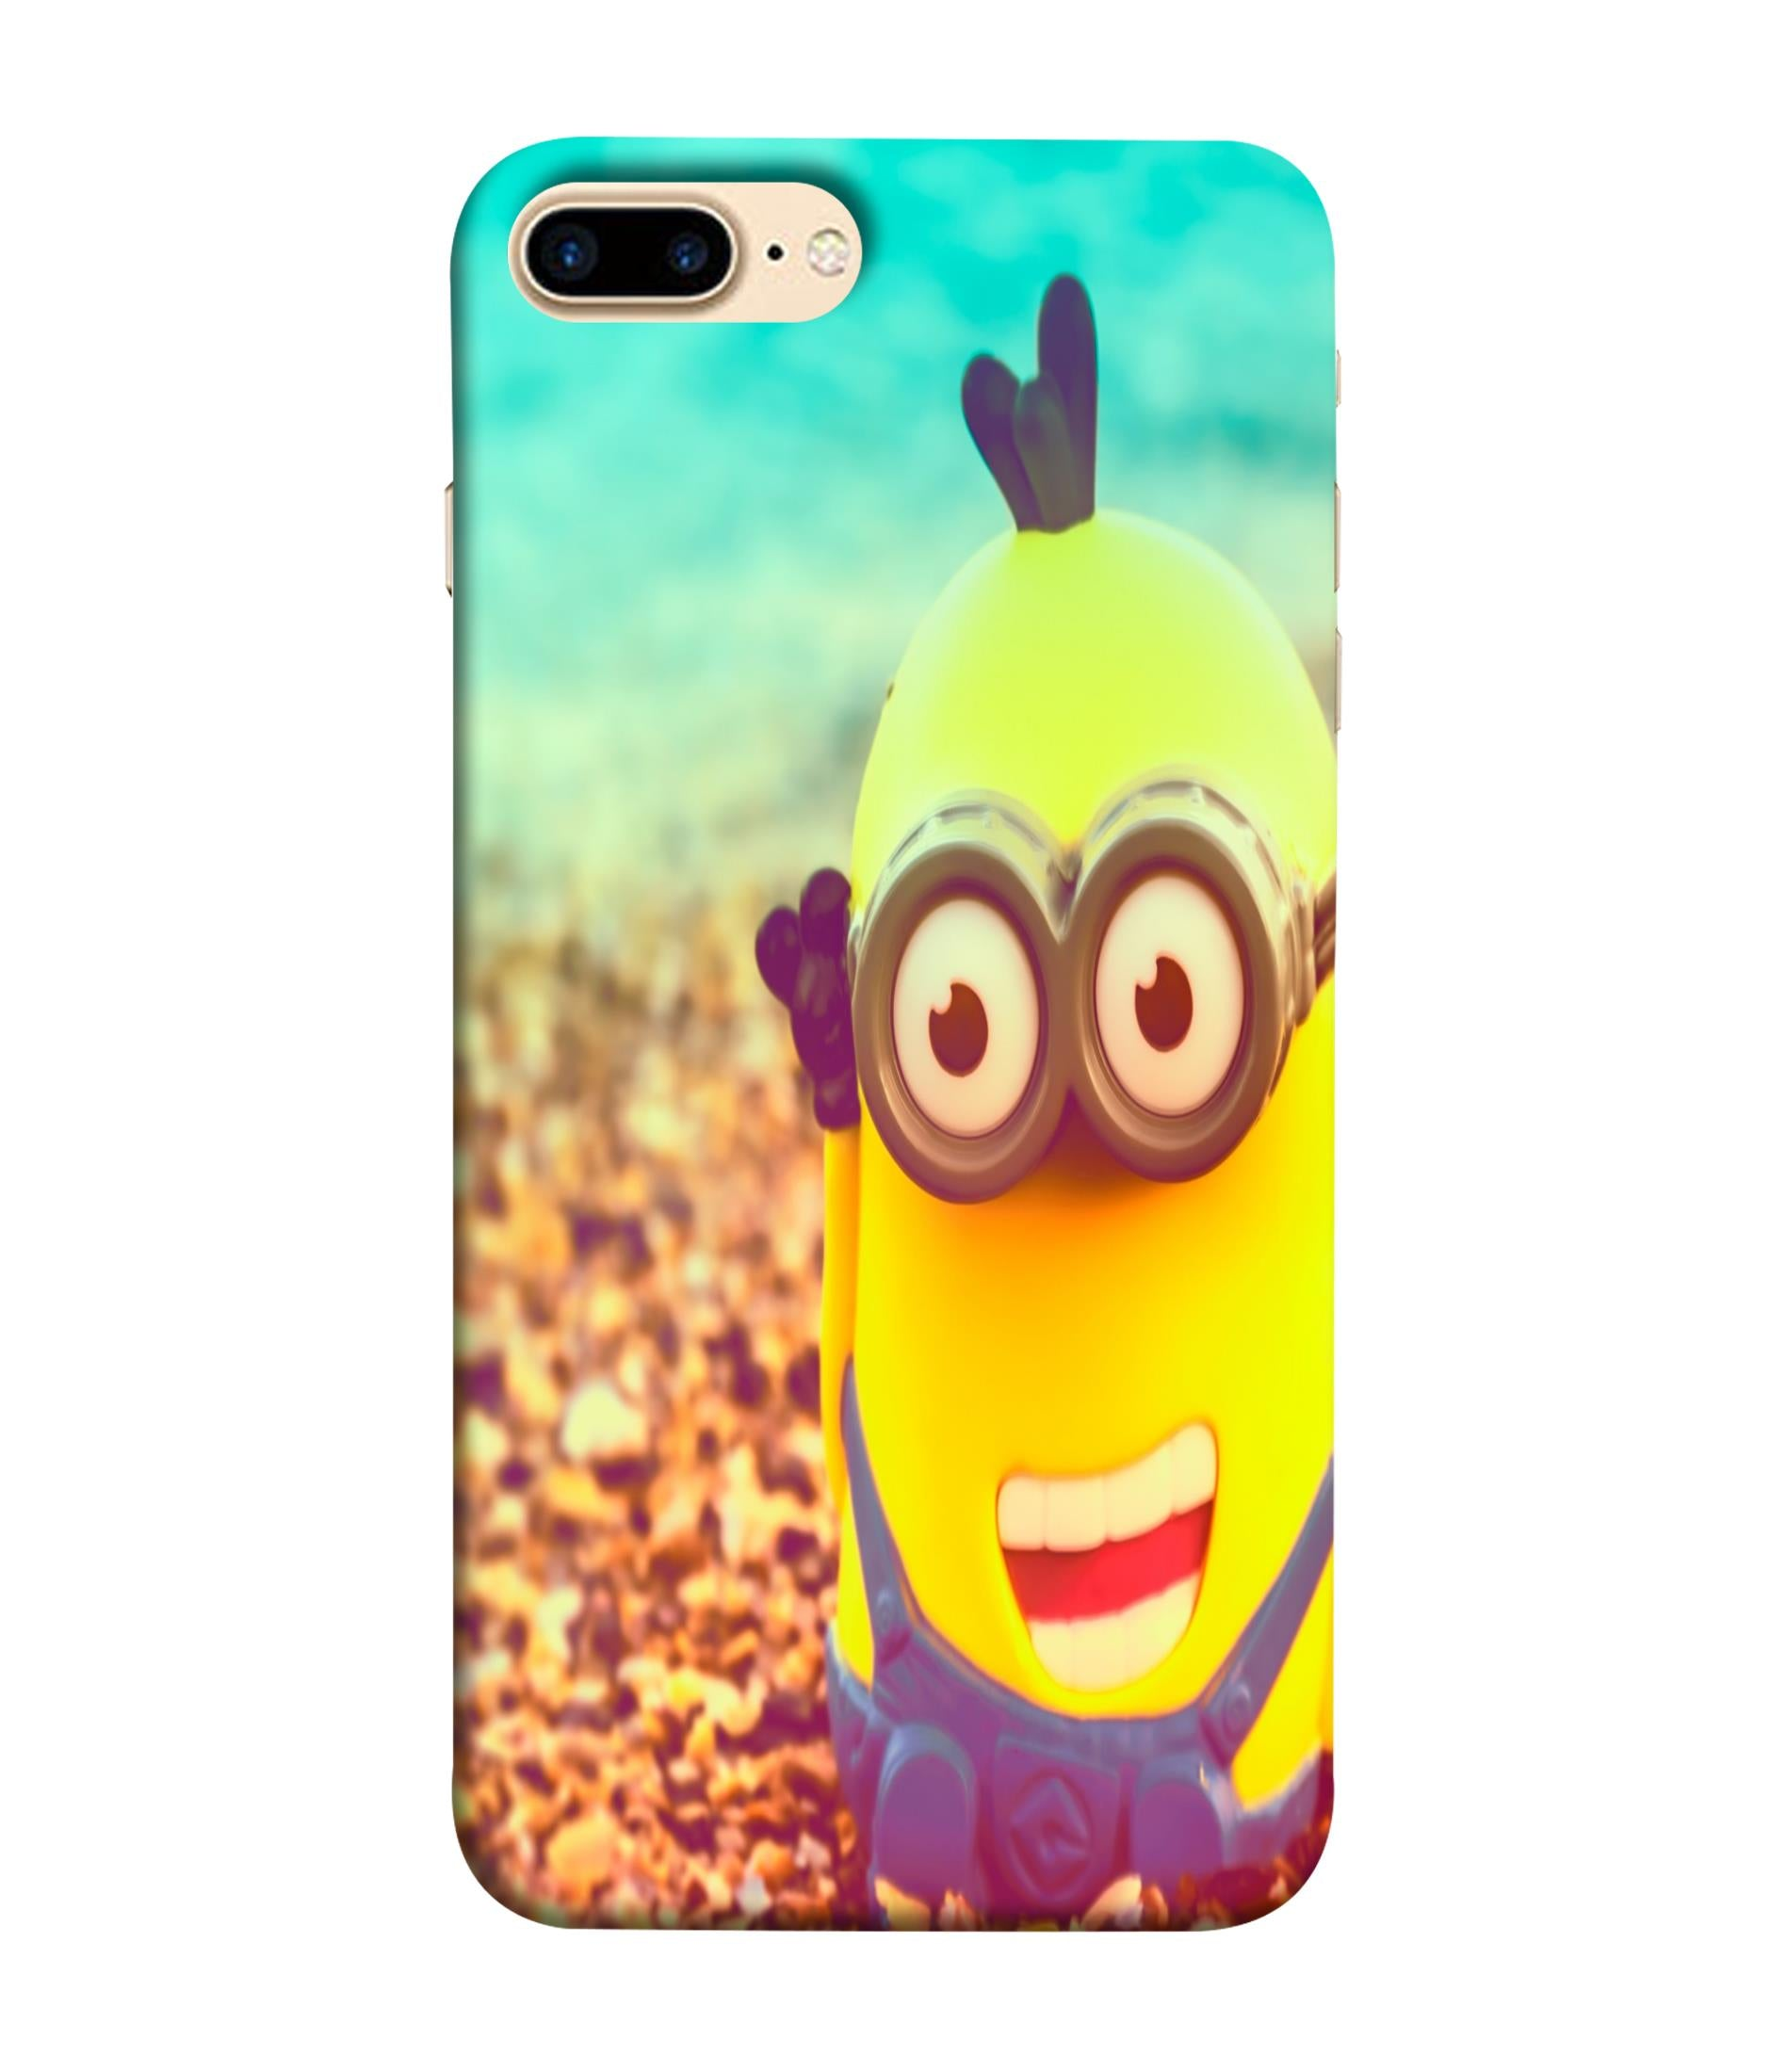 iPhone7 Plus  Minions Giggling Designed Back Cover